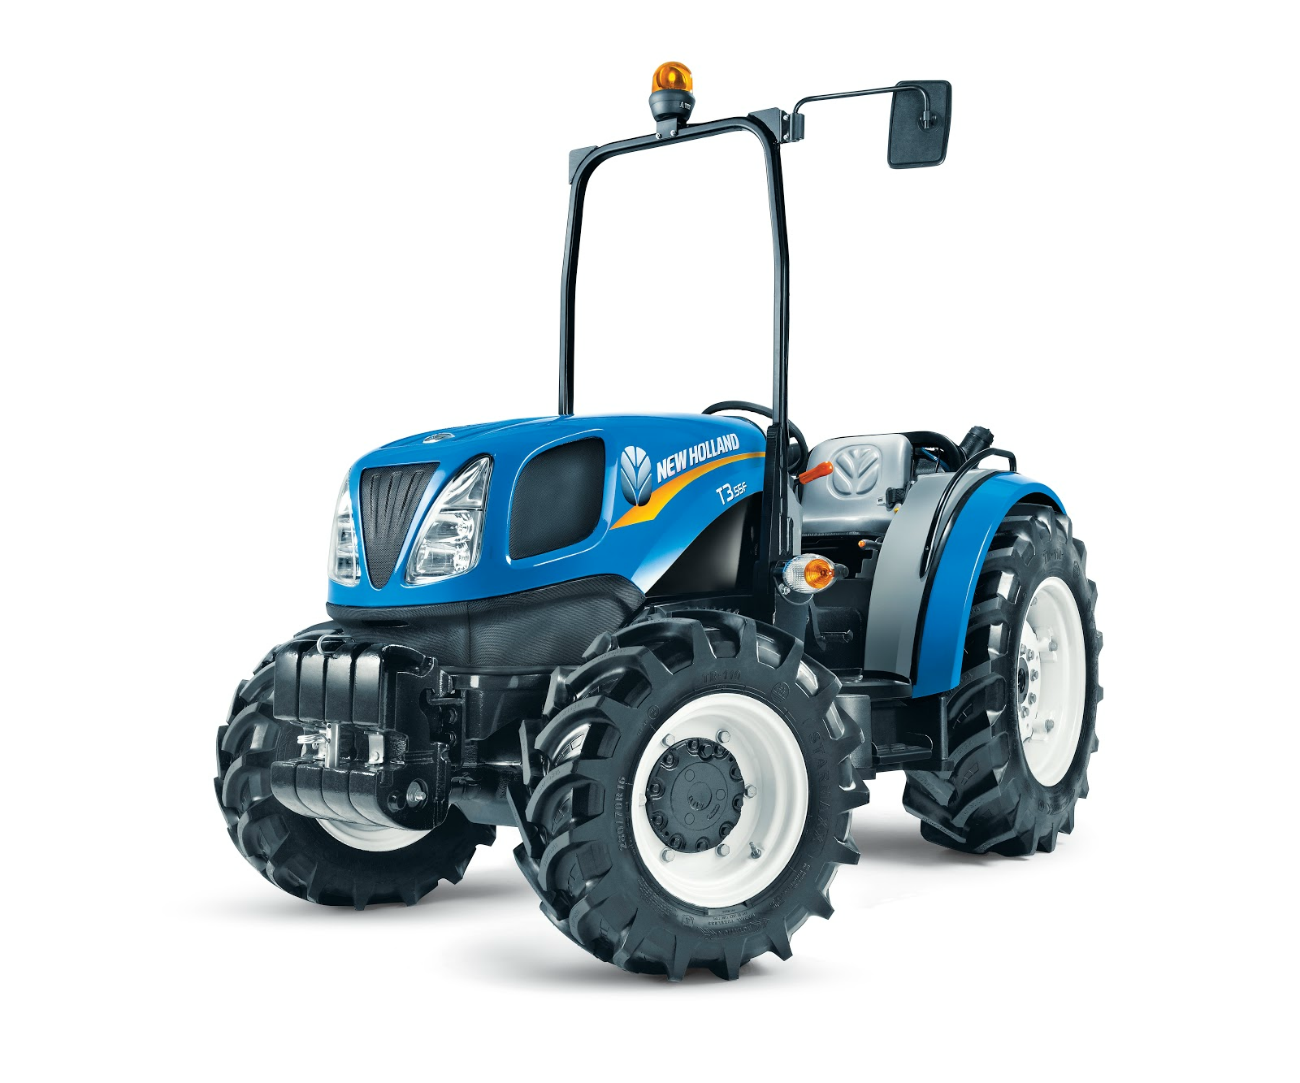 T3f 1 Tractor New Holland 2012 New Holland Tractors